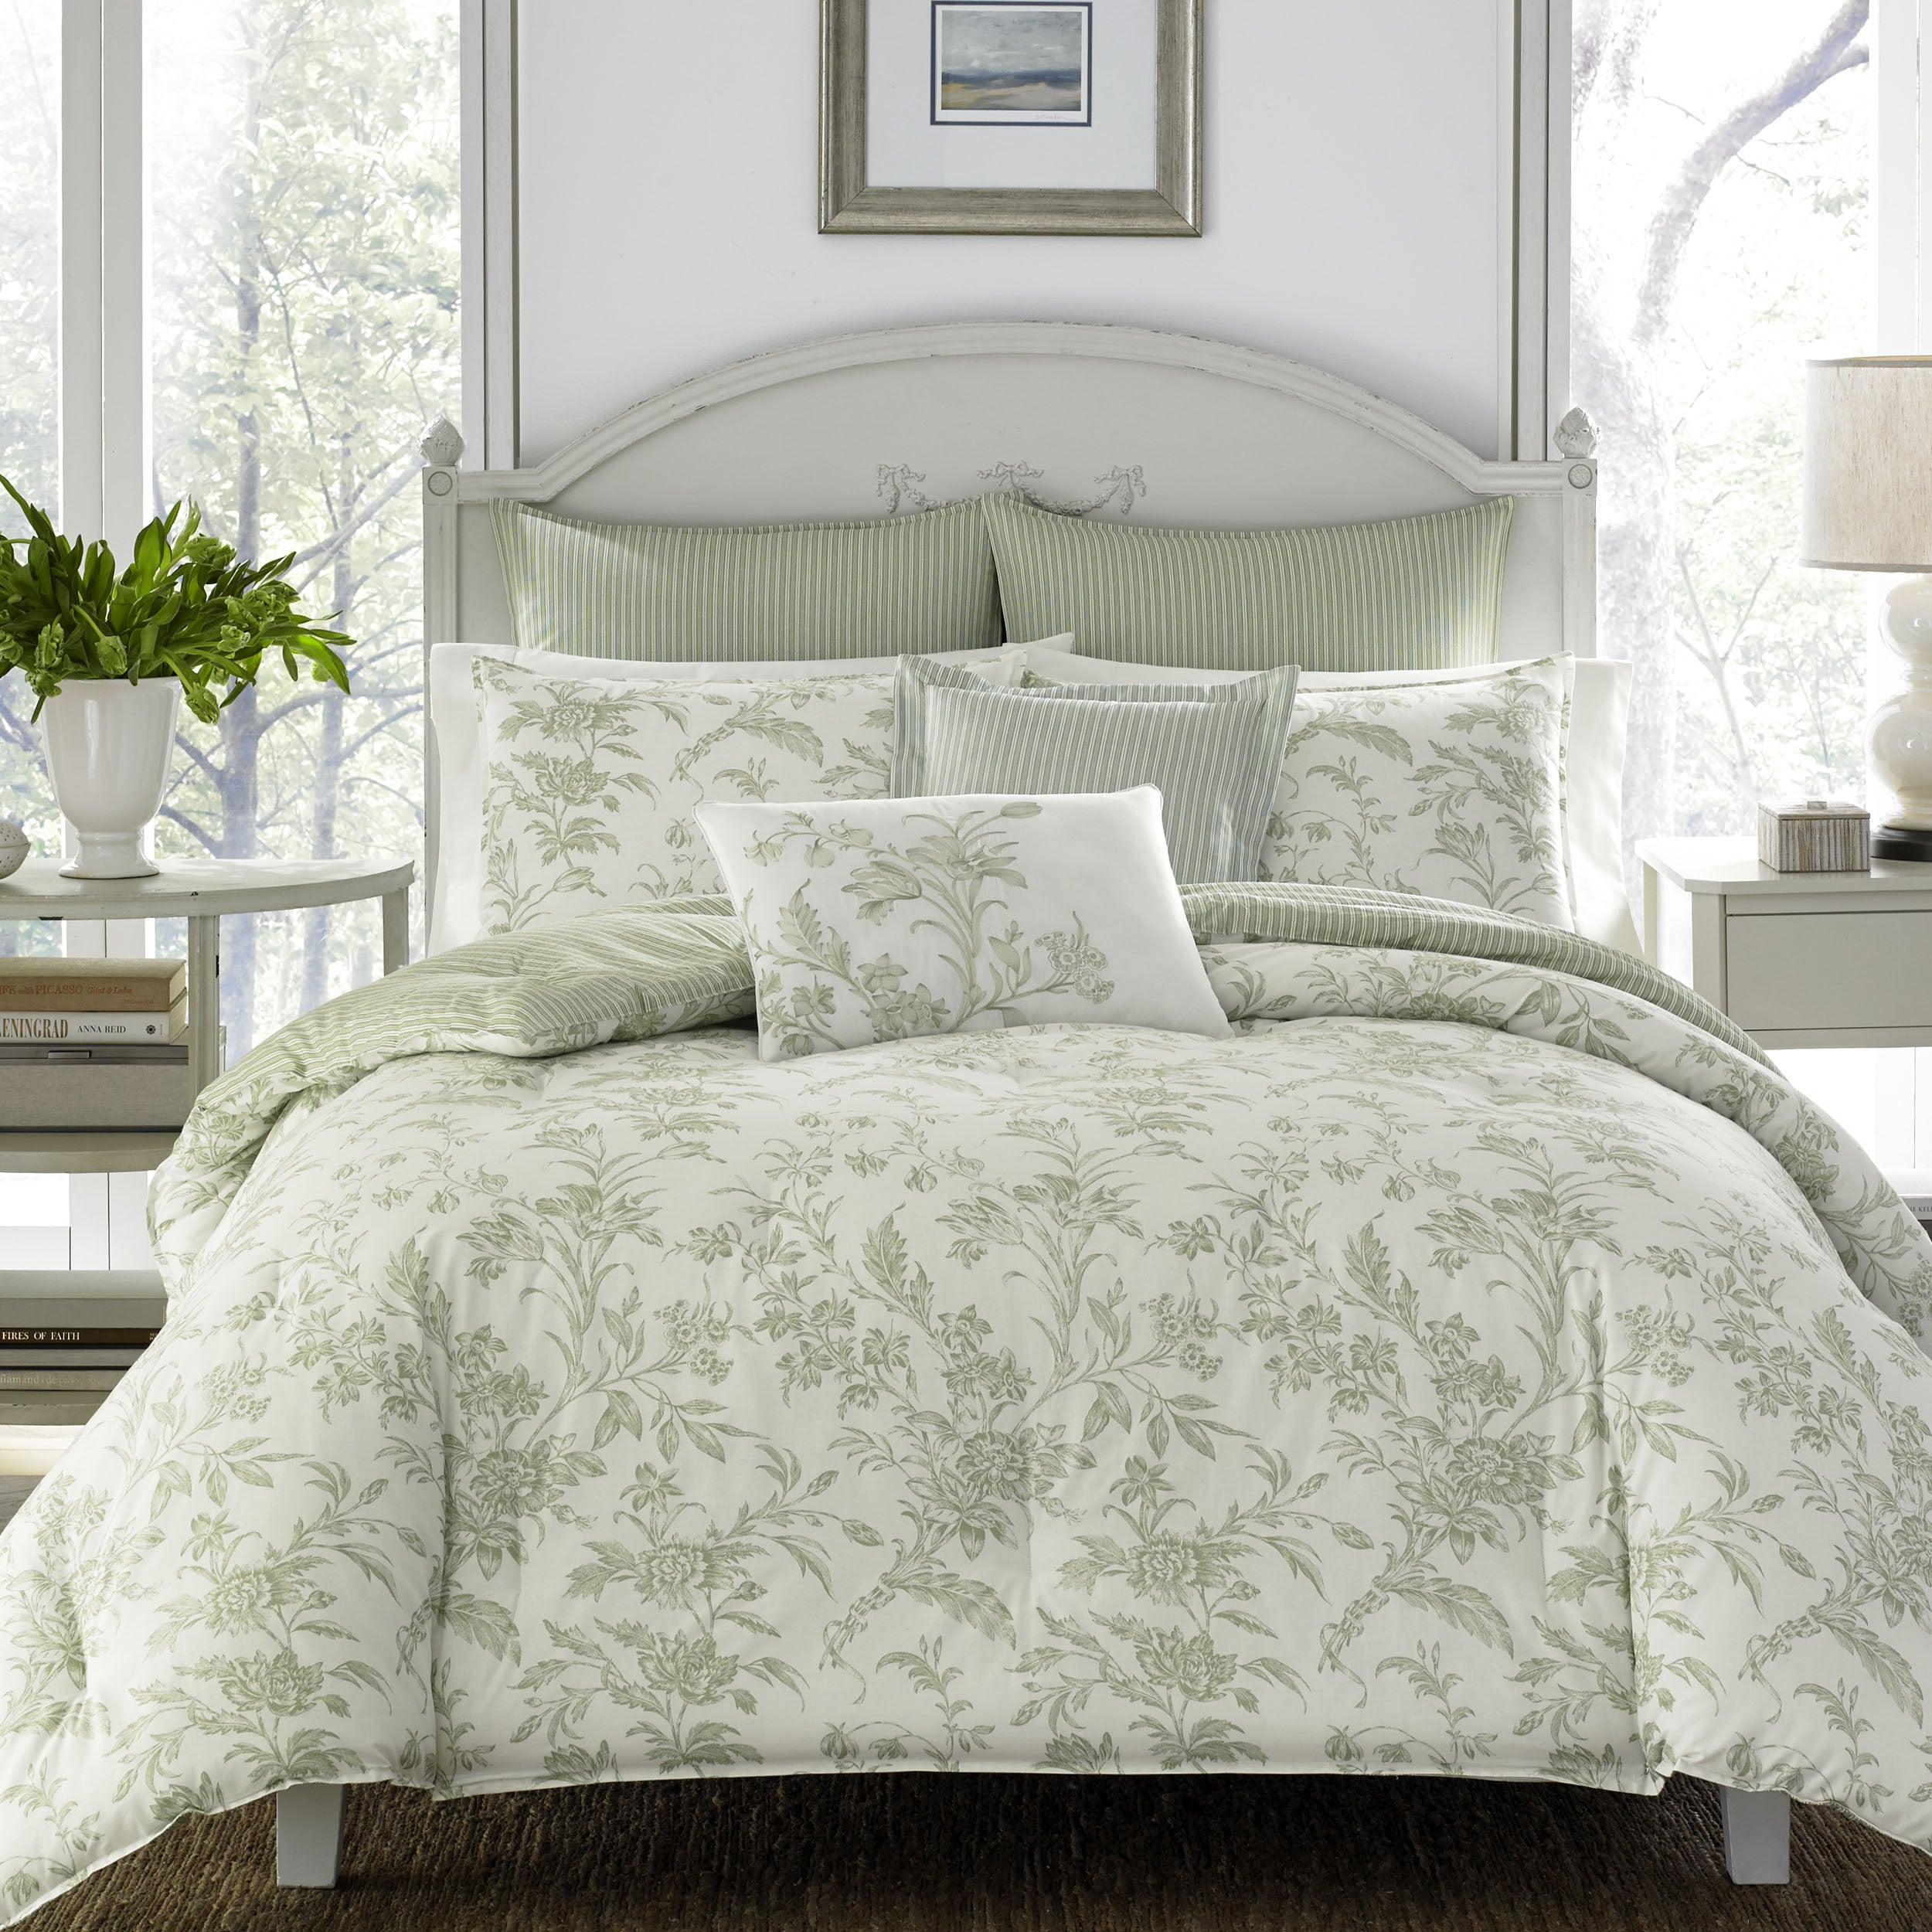 Remarkable Laura Ashley Natalie Green Floral Comforter Bonus Set Download Free Architecture Designs Scobabritishbridgeorg